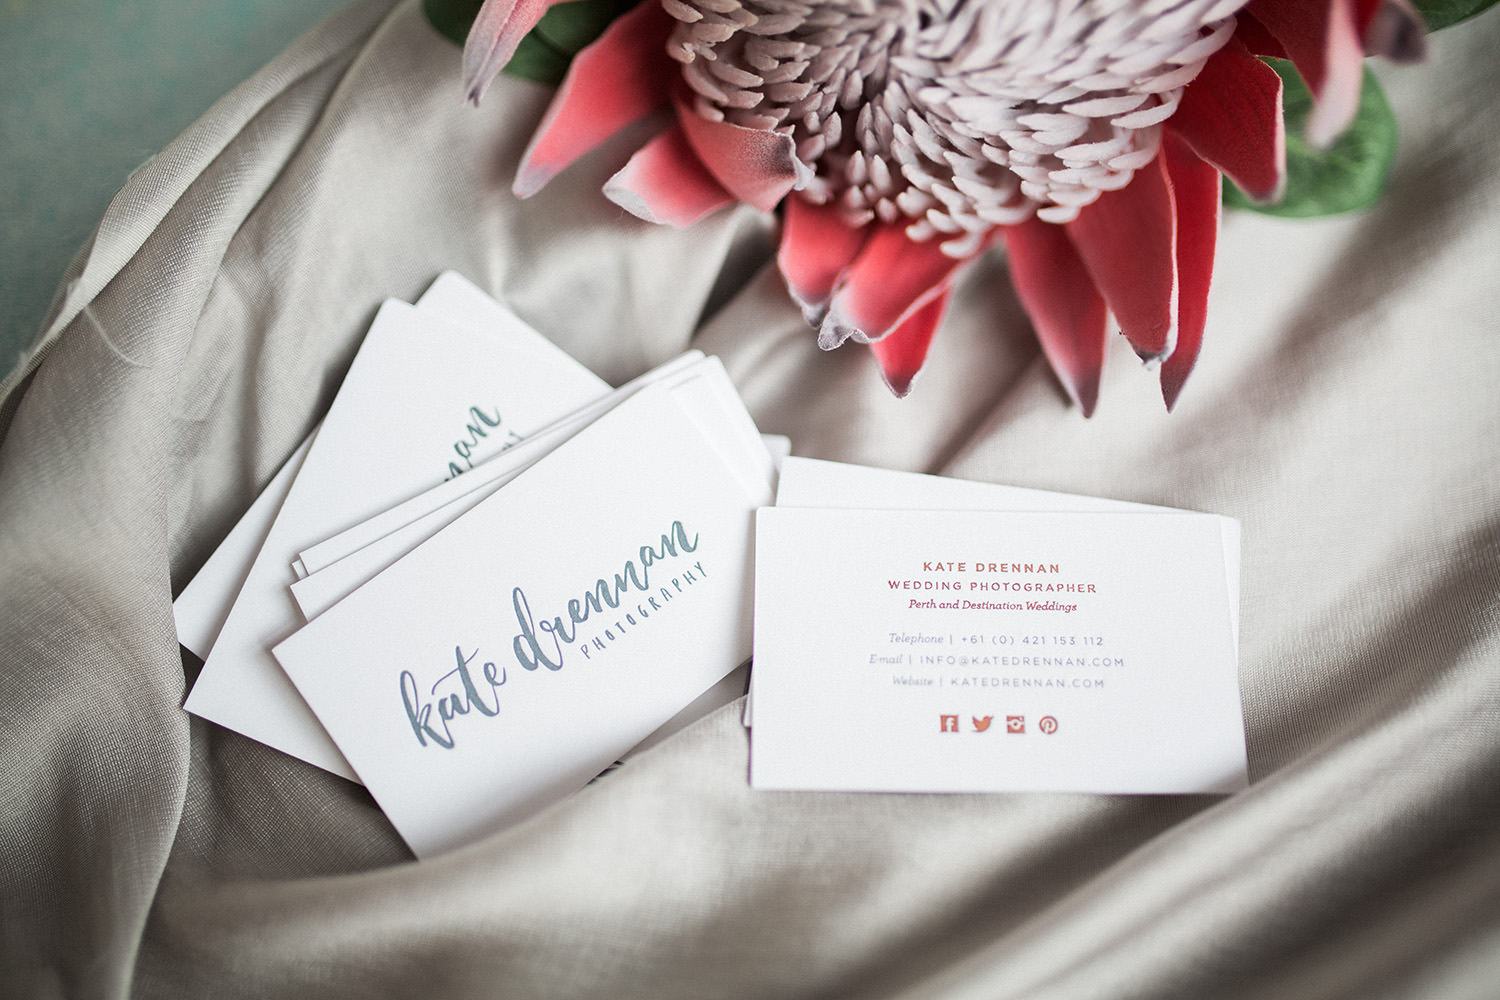 New letterpress rose gold foil business cards kate drennan new letterpress rose gold foil business cards kate drennan photography reheart Gallery